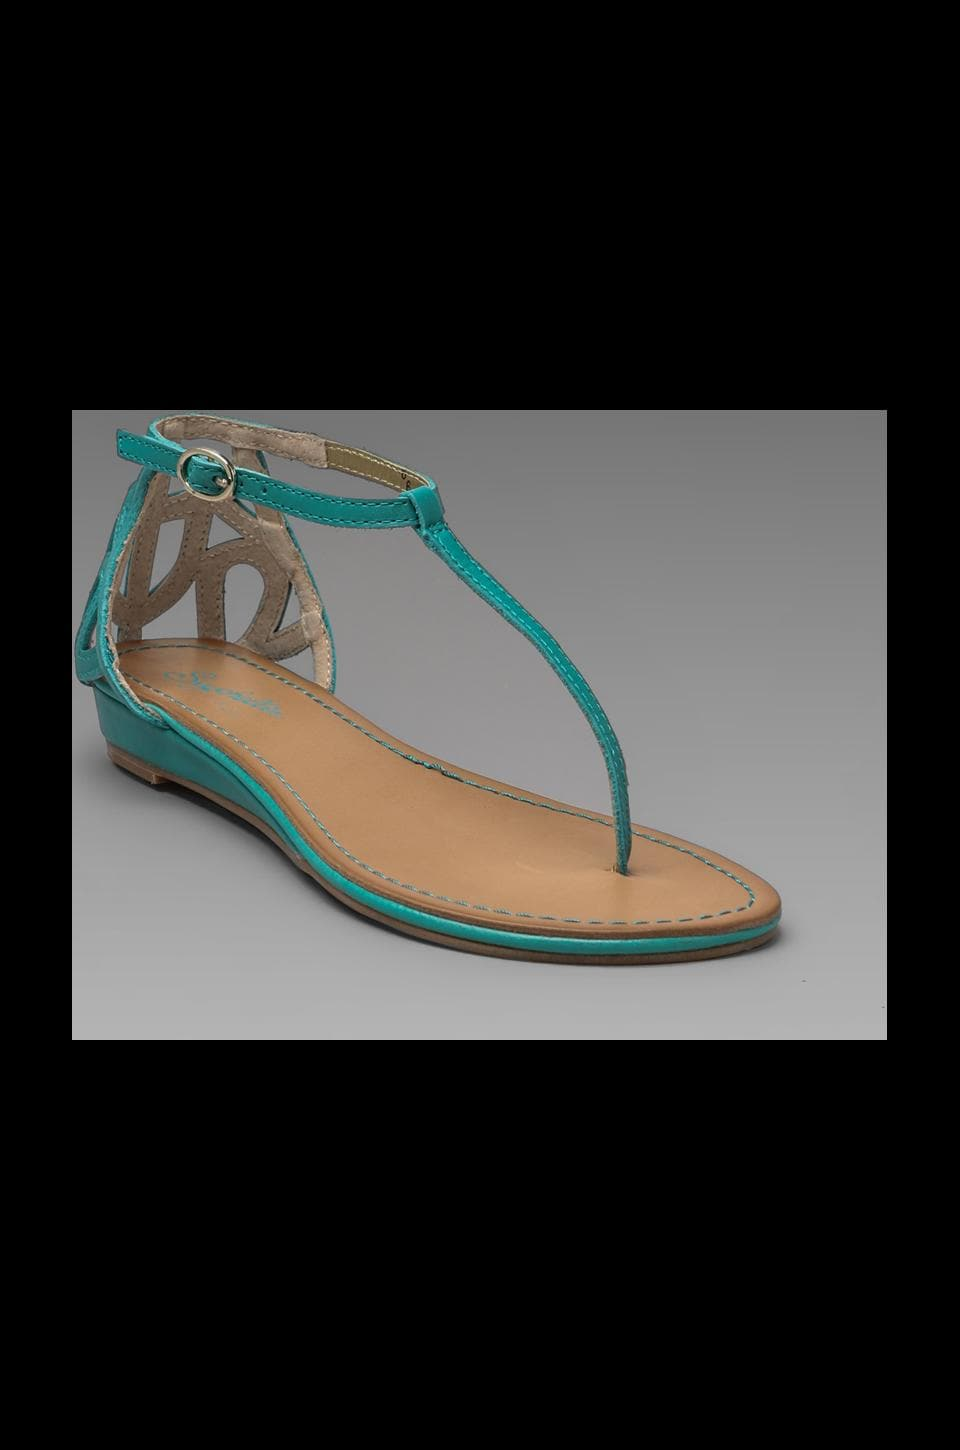 Seychelles Fearless Sandal in Sea Green